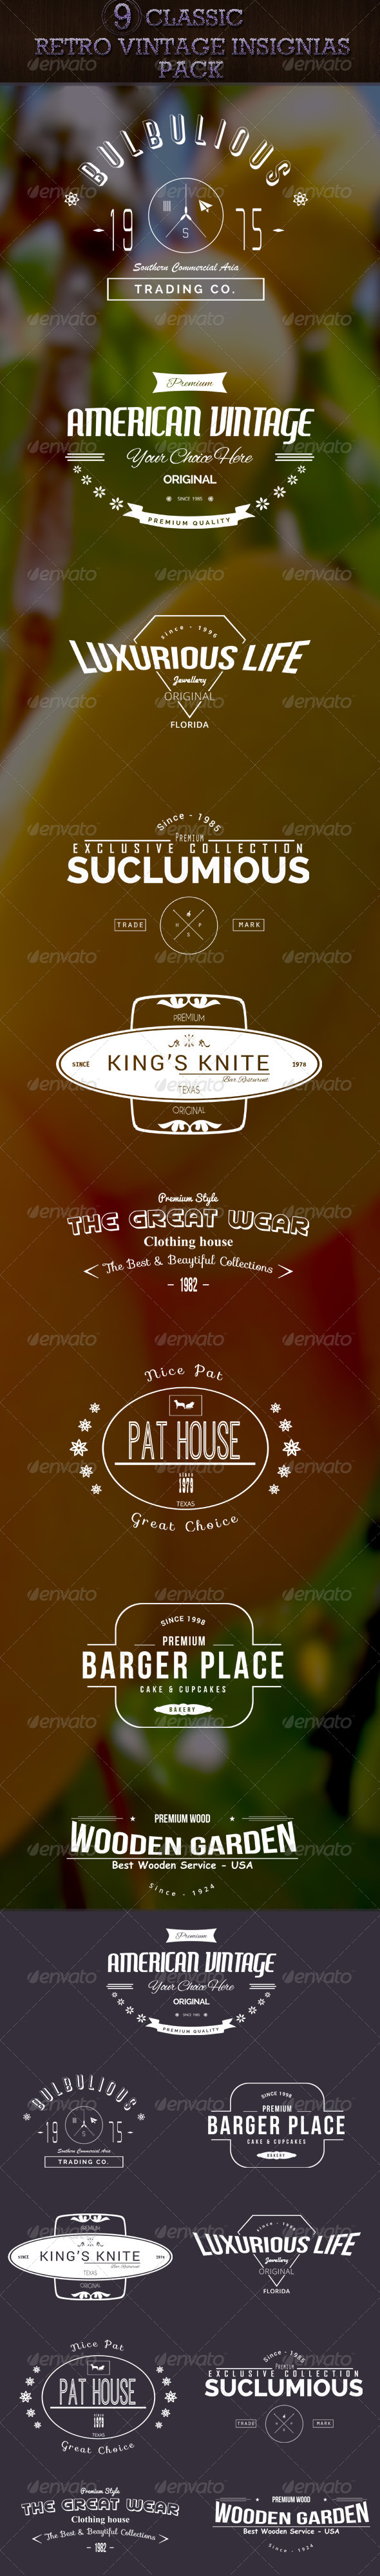 GraphicRiver Classic Retro Vintage and Insignias Pack 7987275